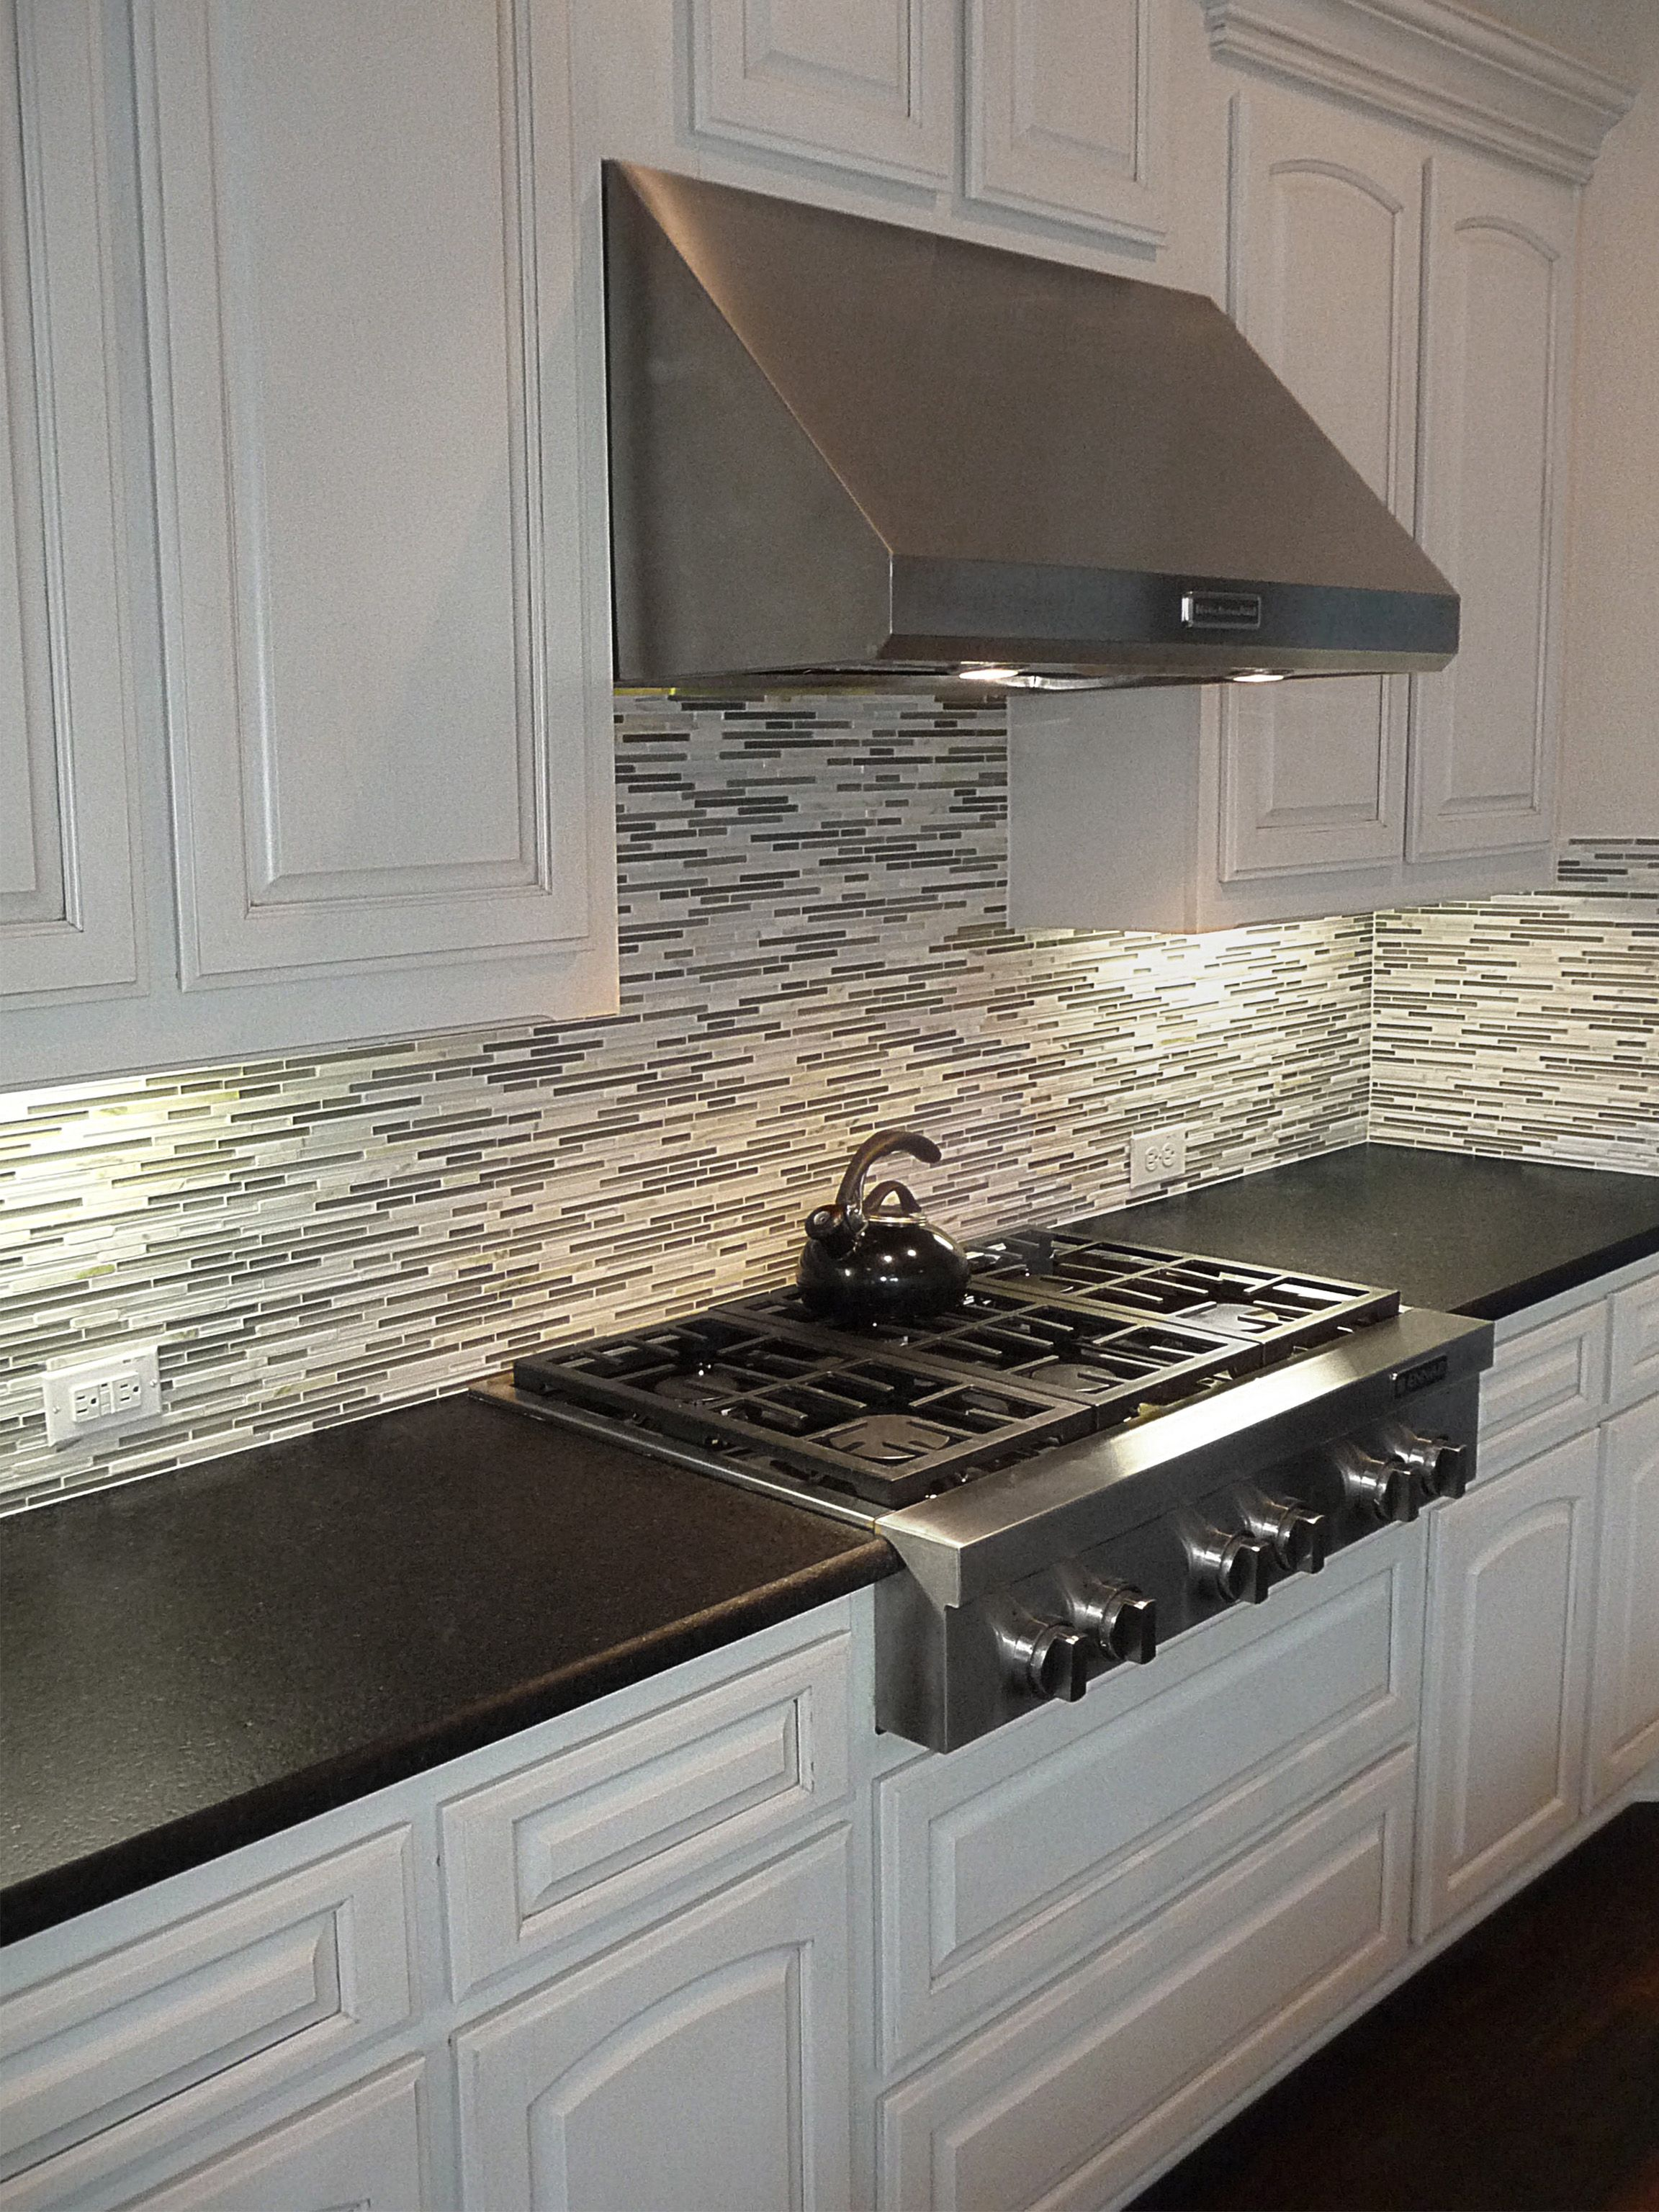 black pearl leather granite countertops with a mosaic backsplash black pearl leather granite countertops with a mosaic backsplash and white painted cabinets